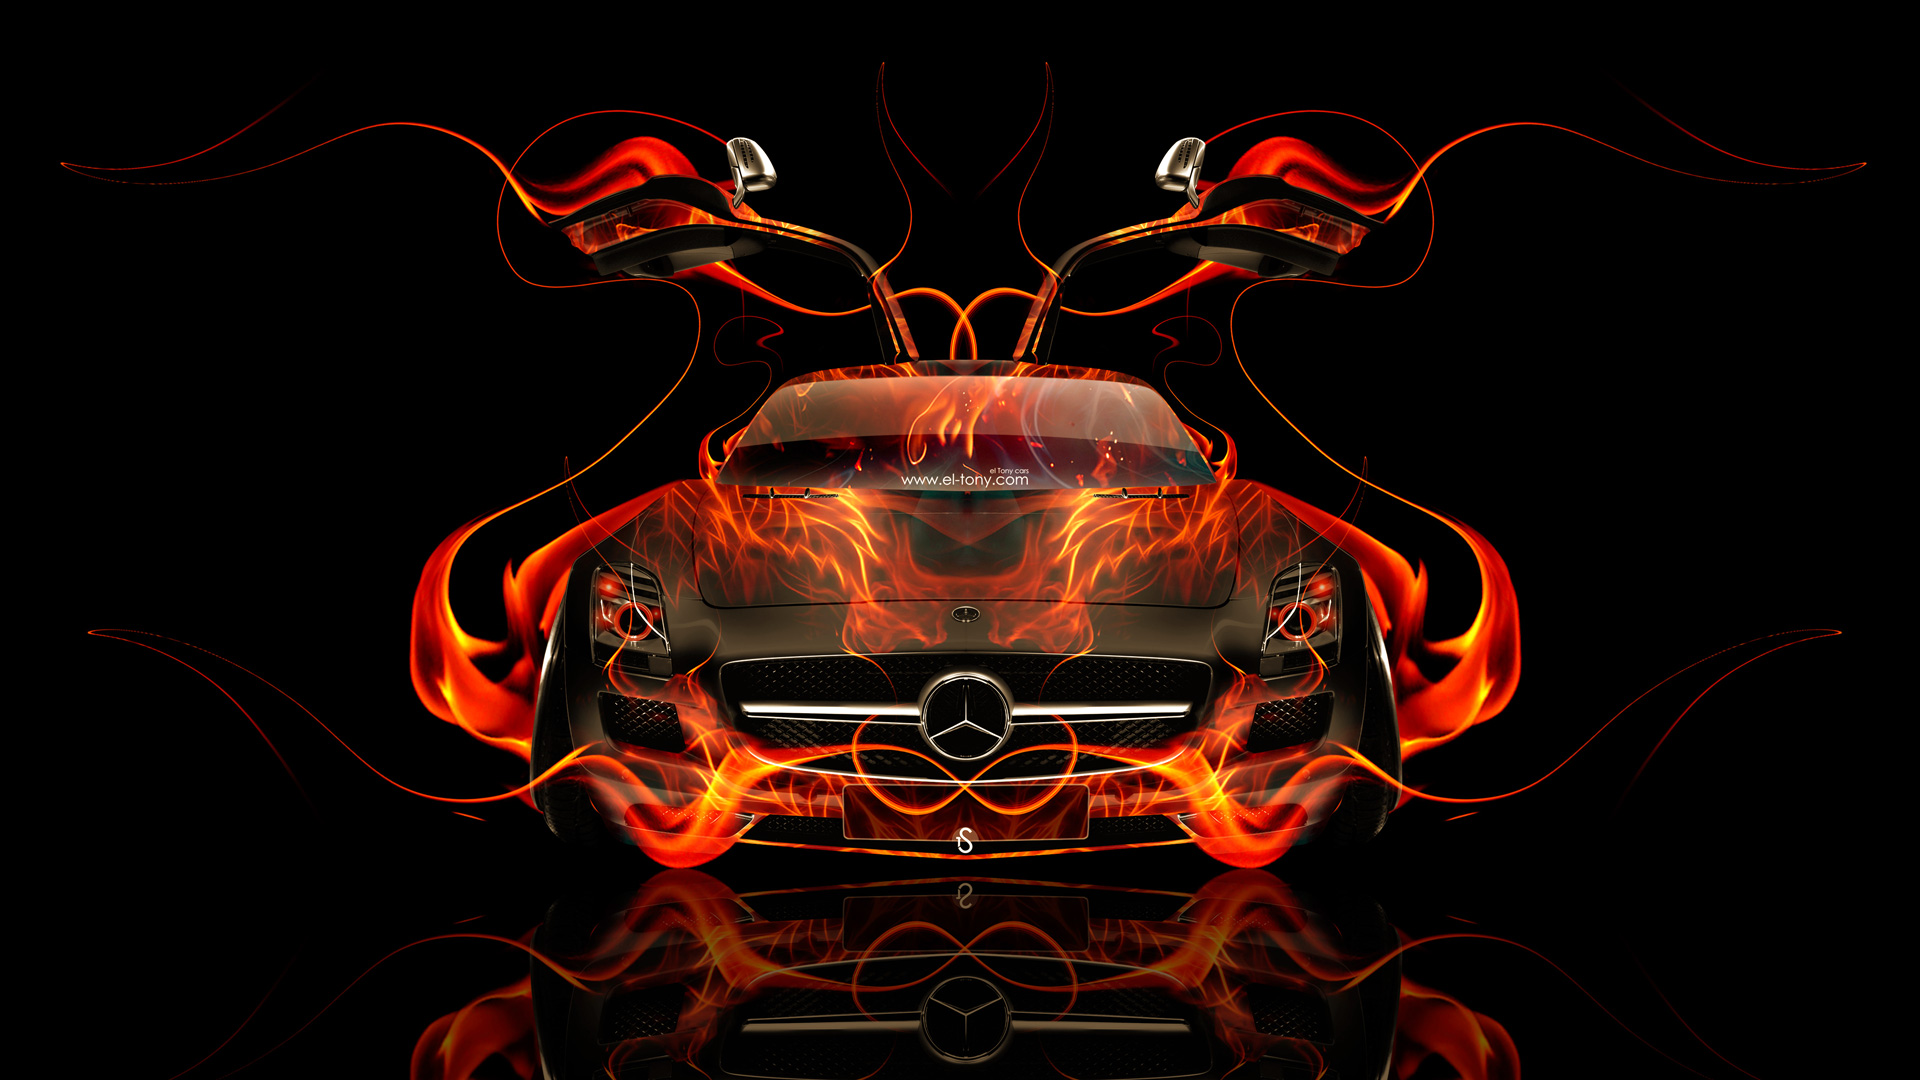 Iphone Muscle Car Wallpapers Mercedes Sls Amg Open Doors Front Fire Abstract Car 2014